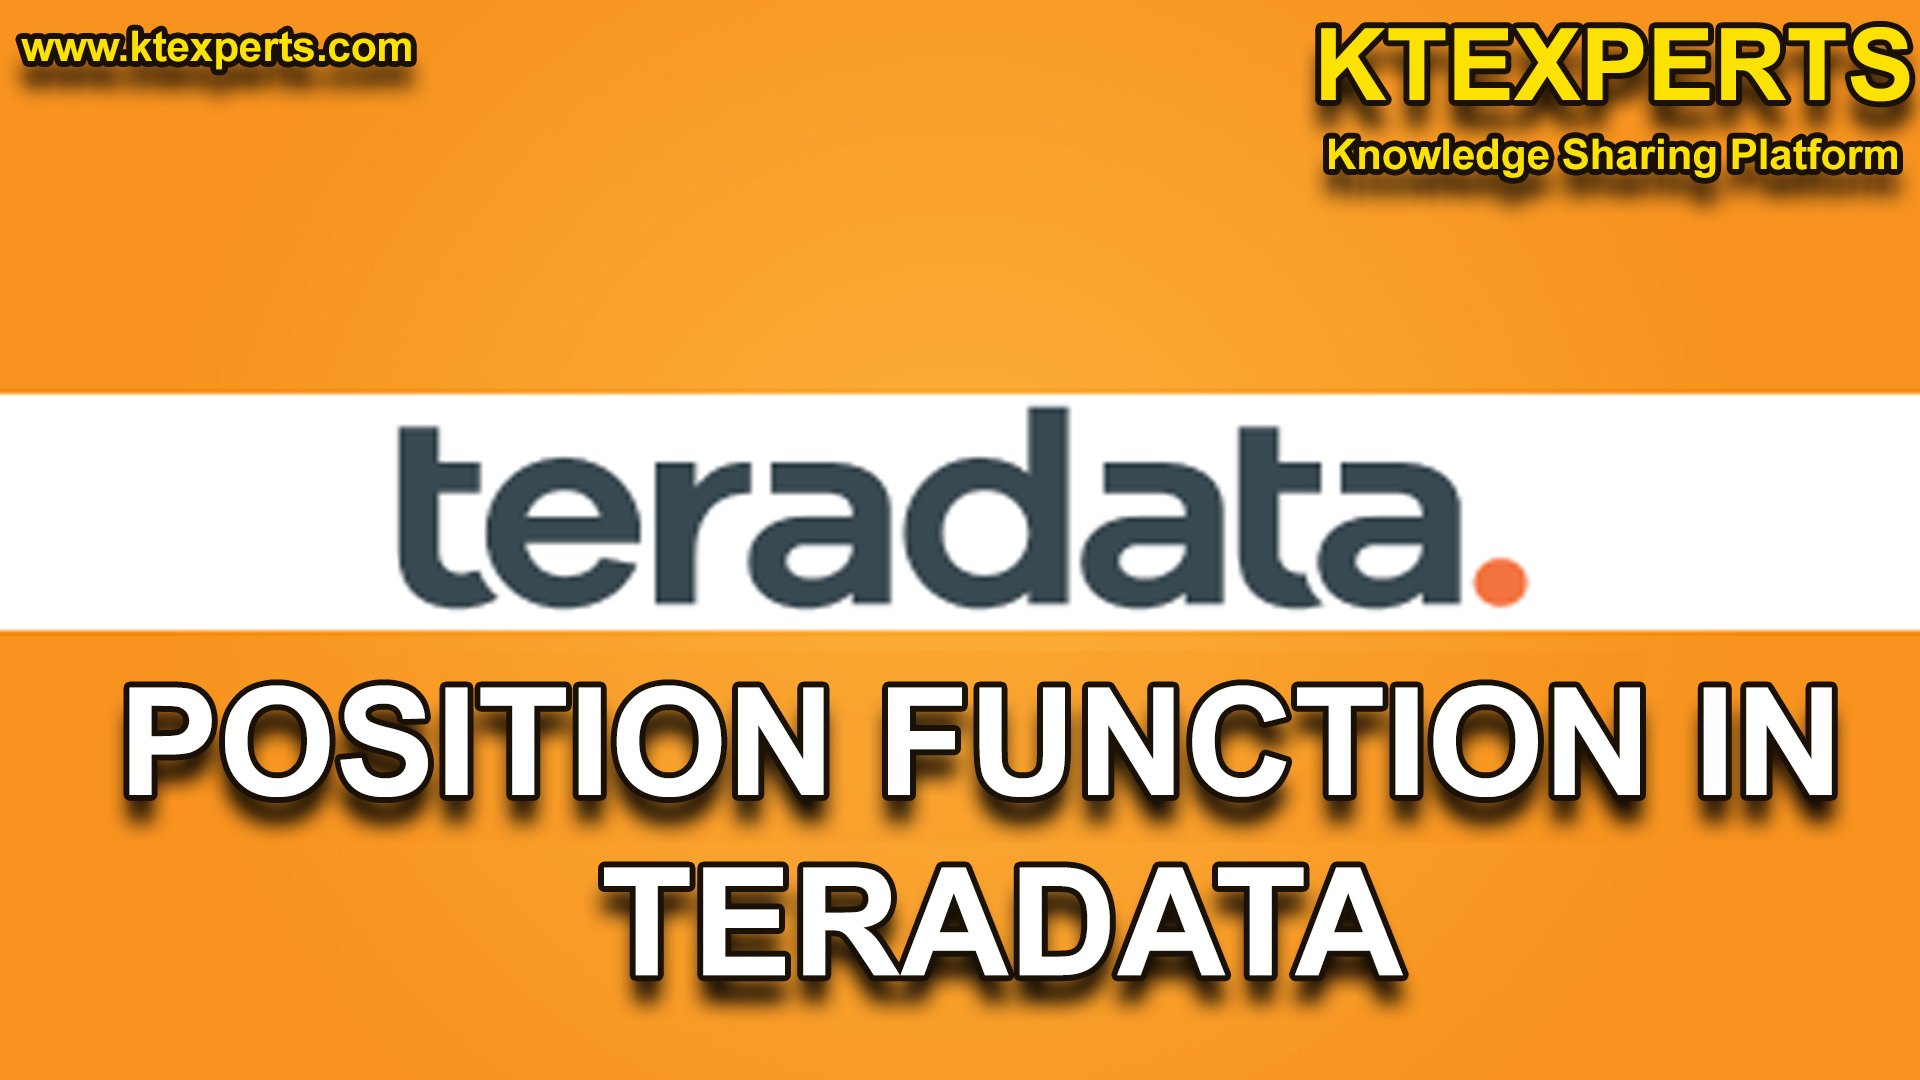 POSITION FUNCTION IN TERADATA